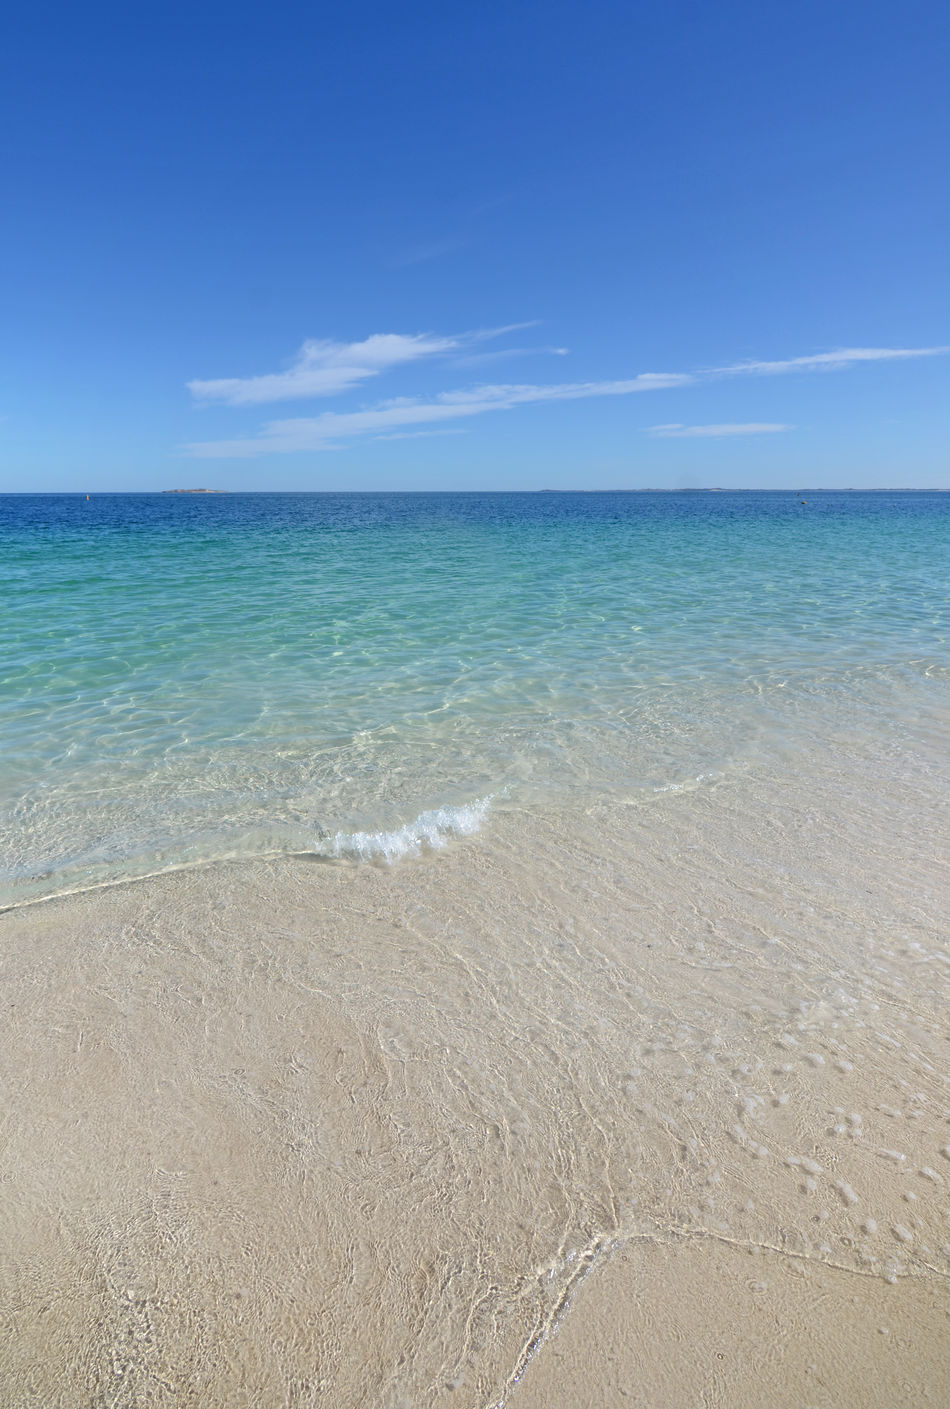 Calm Waters at Jurien Bay Beach Blue Jurien Bay Sand Scenics Sea Sky Sunlight Tranquility Vacations